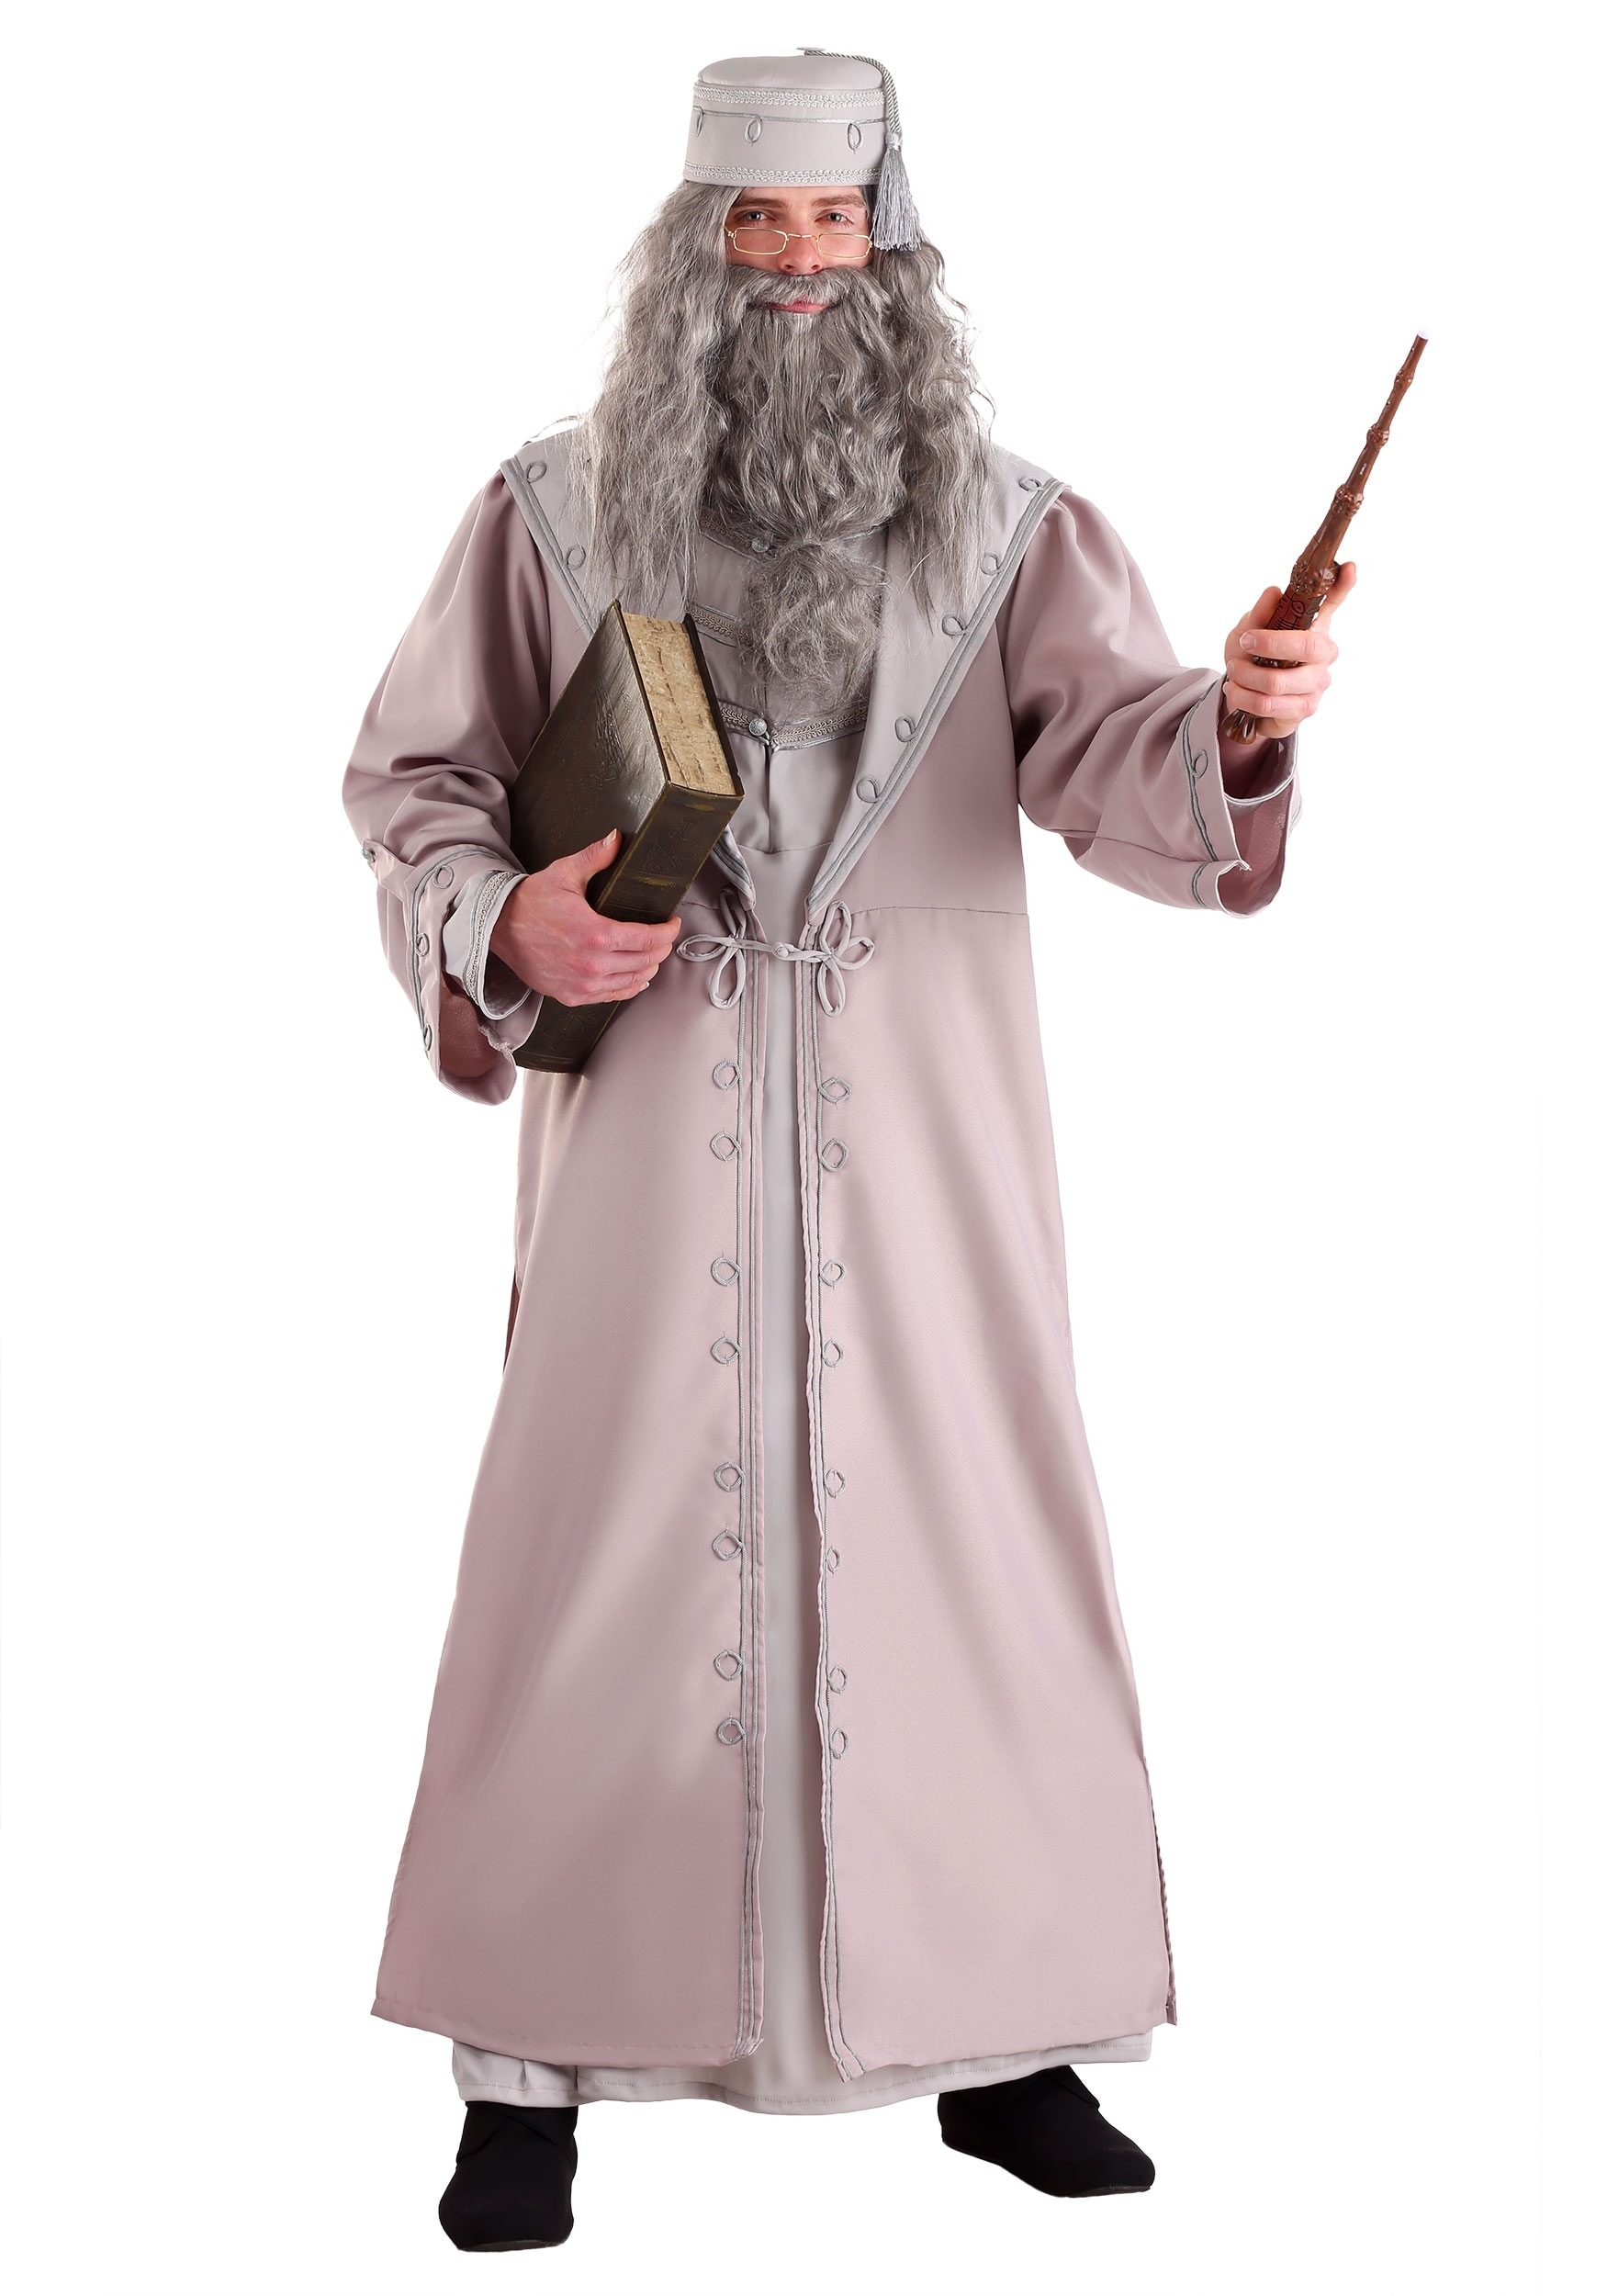 Harry potter costumes accessories halloweencostumes deluxe dumbledore adult costume solutioingenieria Images